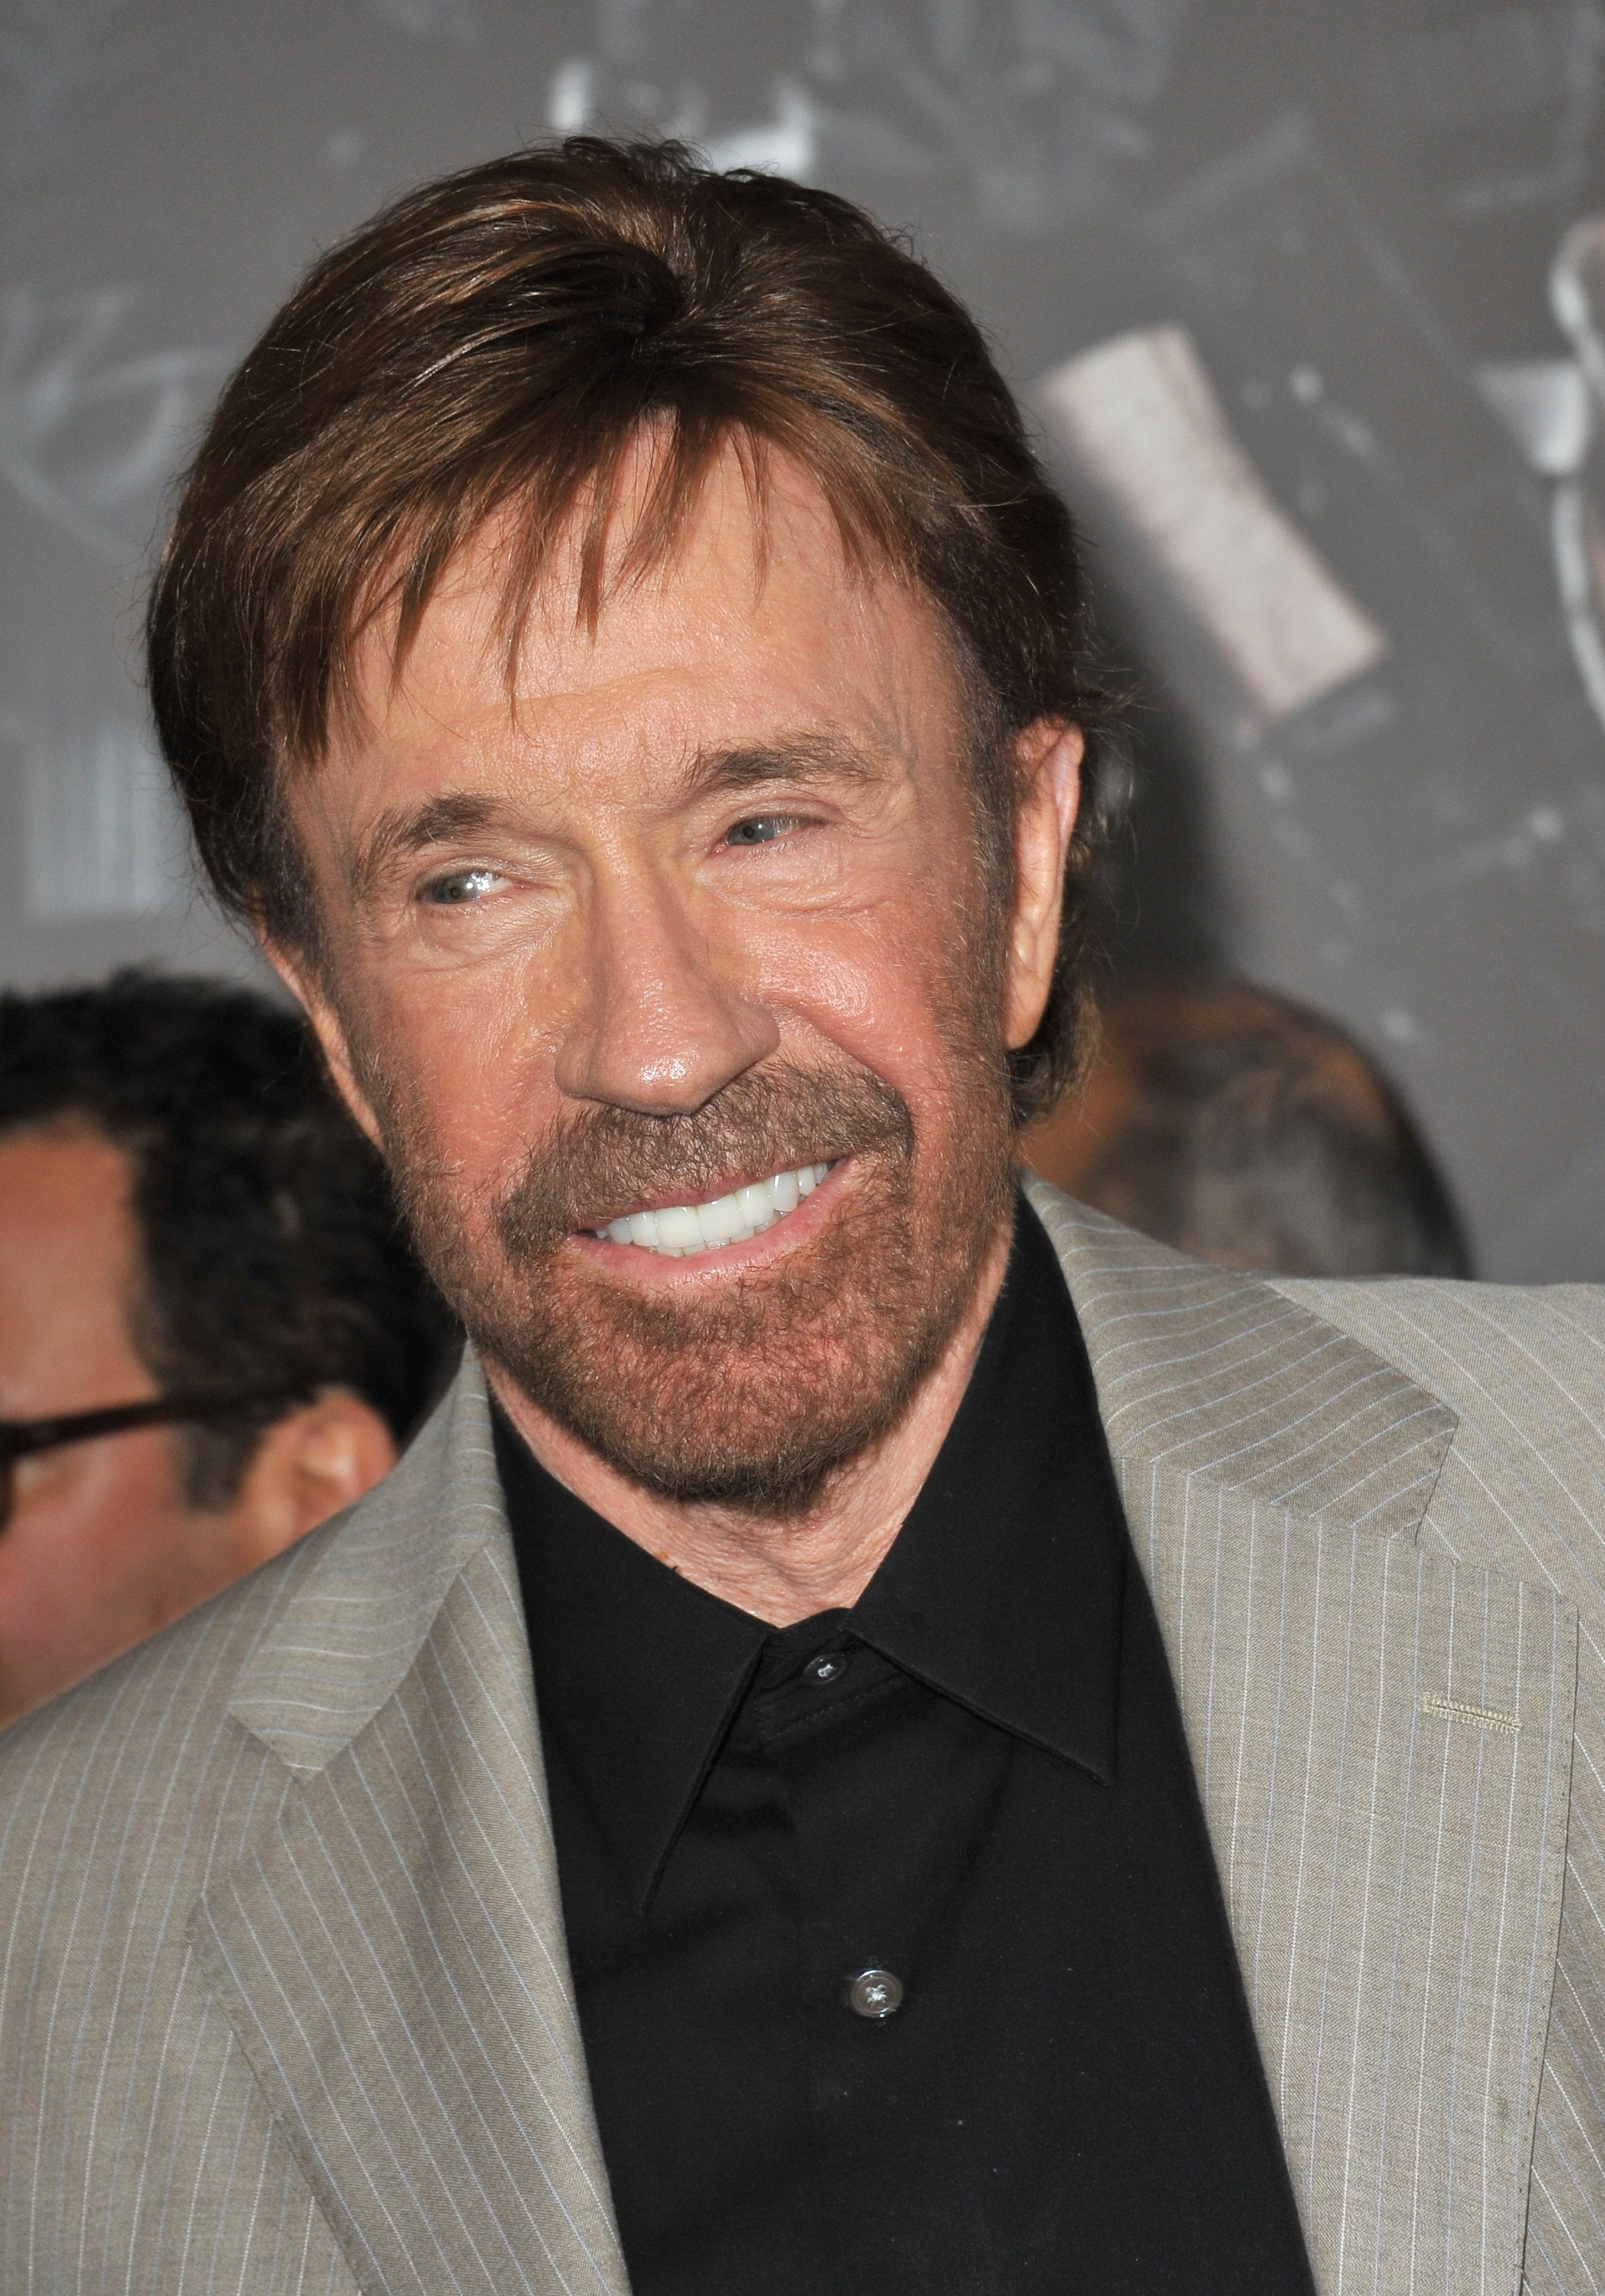 Chuck Norris. Image Credit: Getty Images